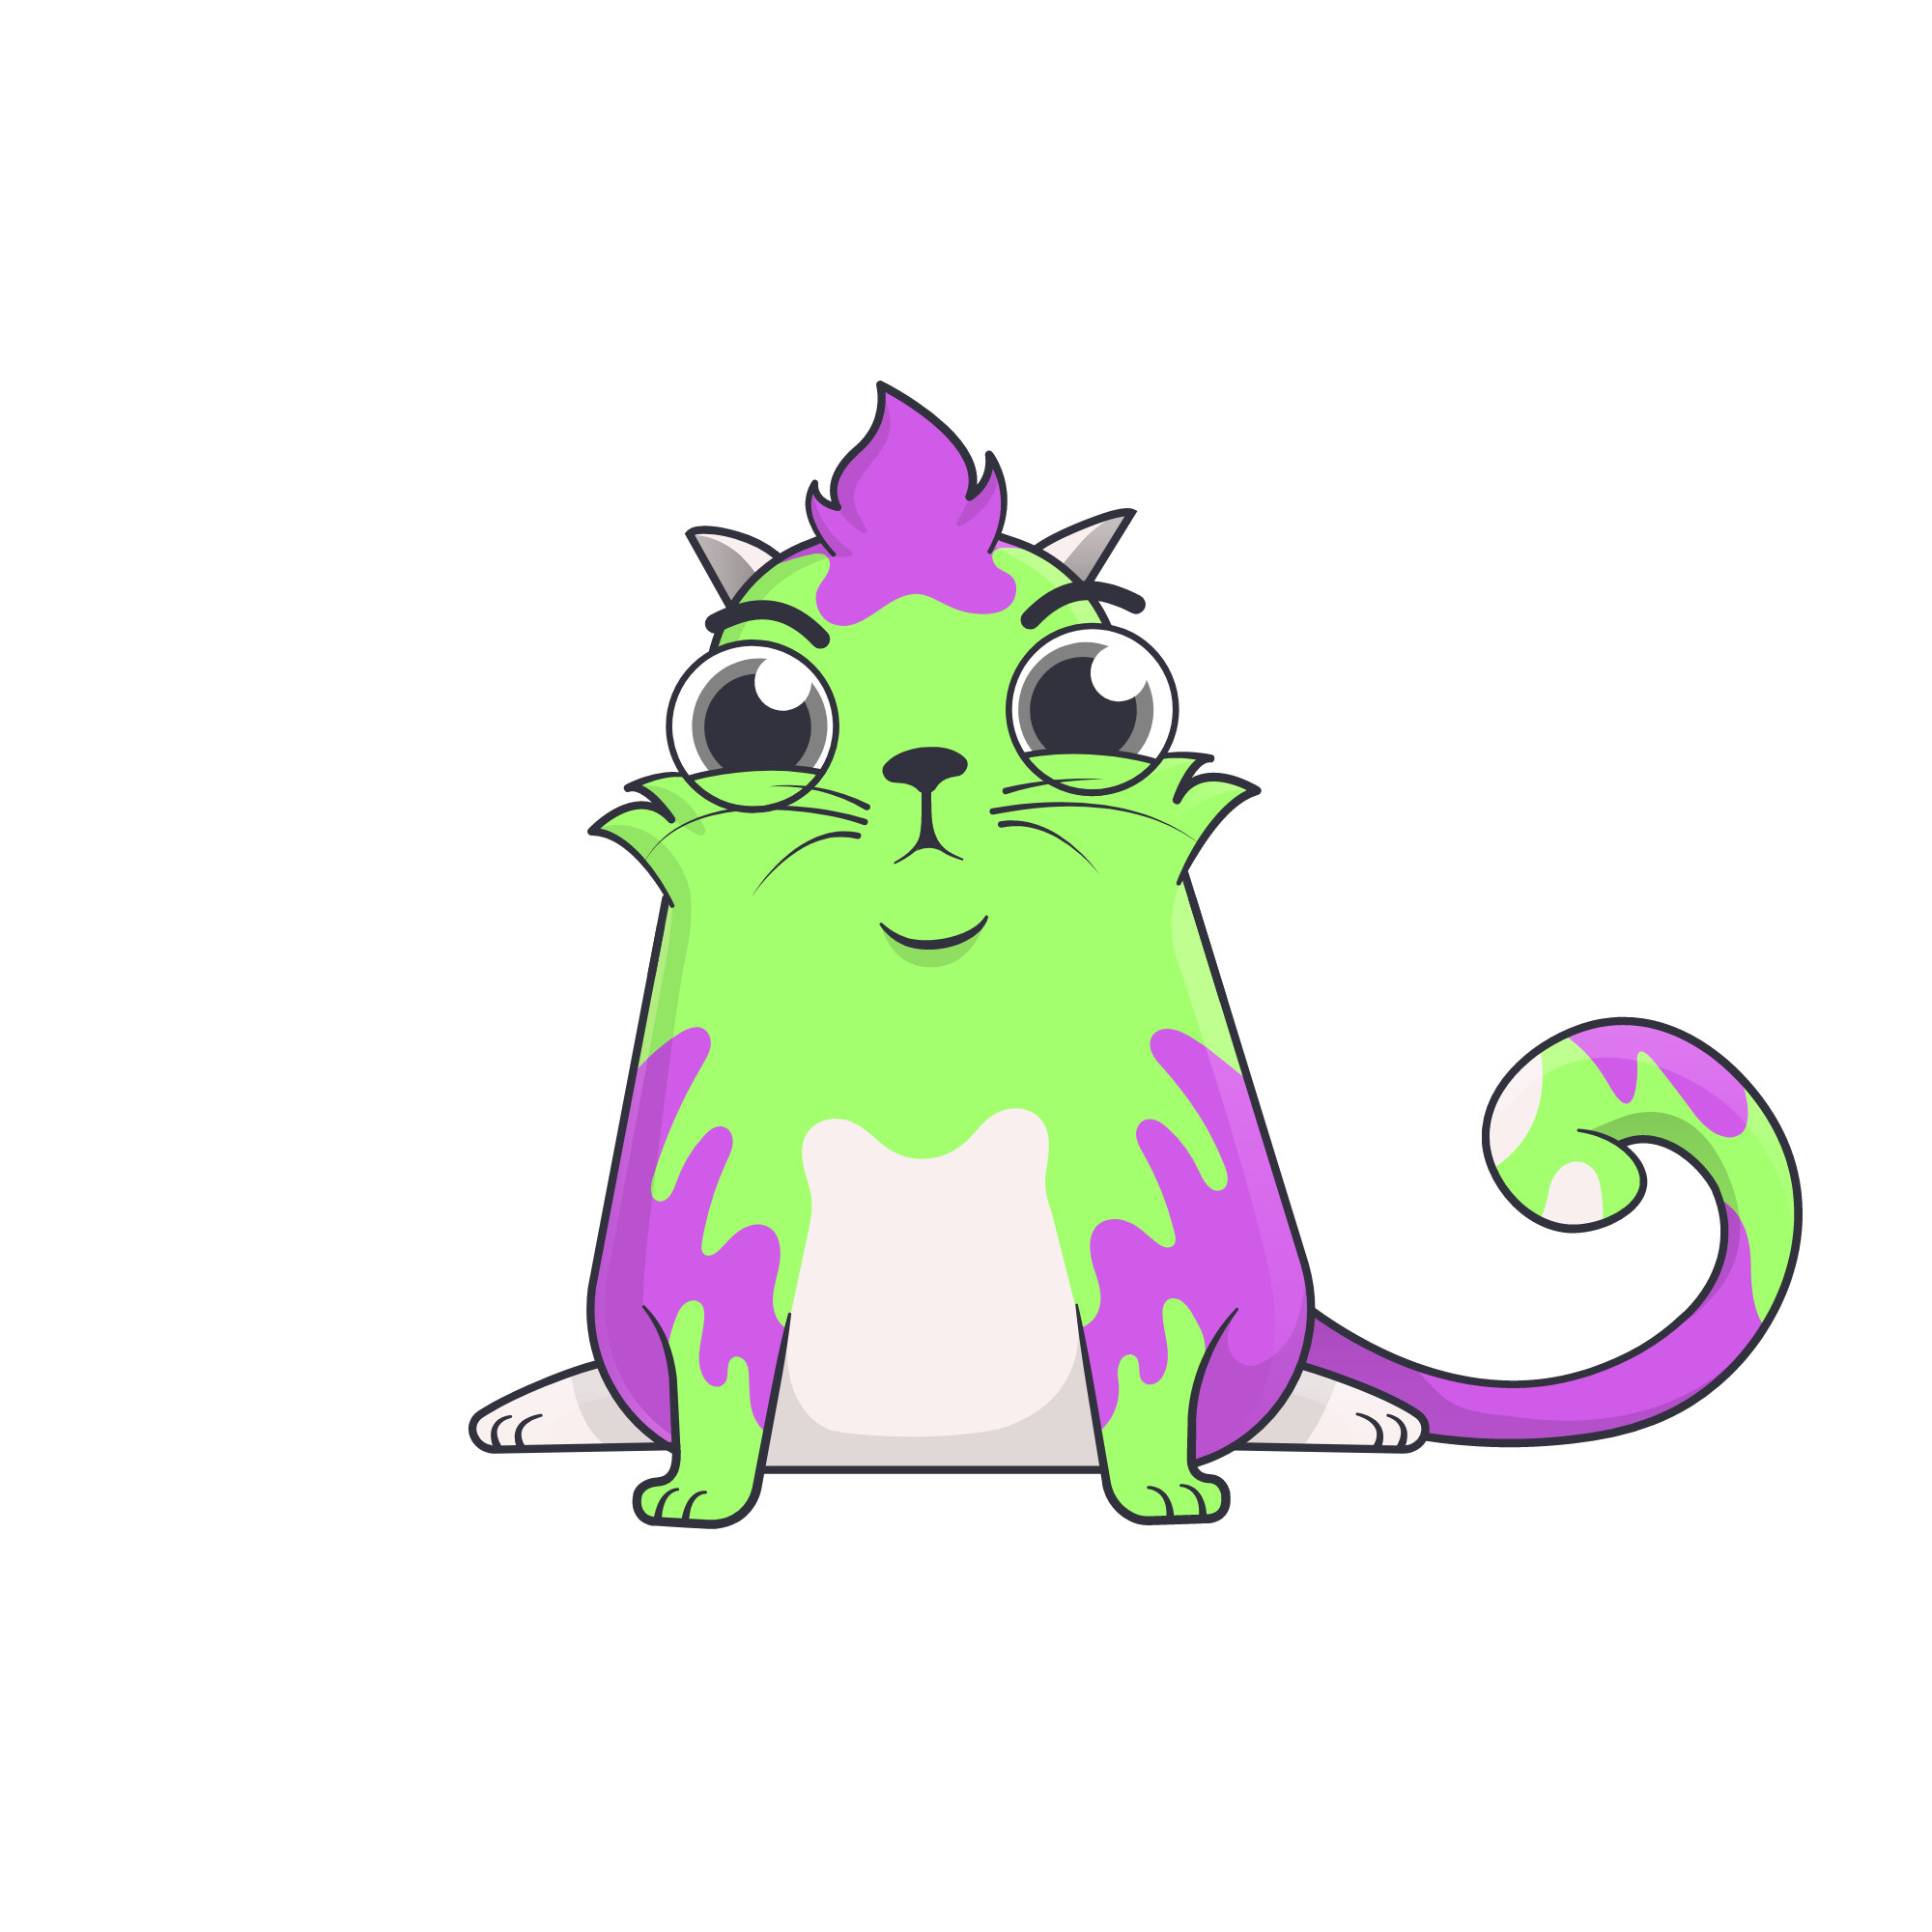 cryptokitty #1154309